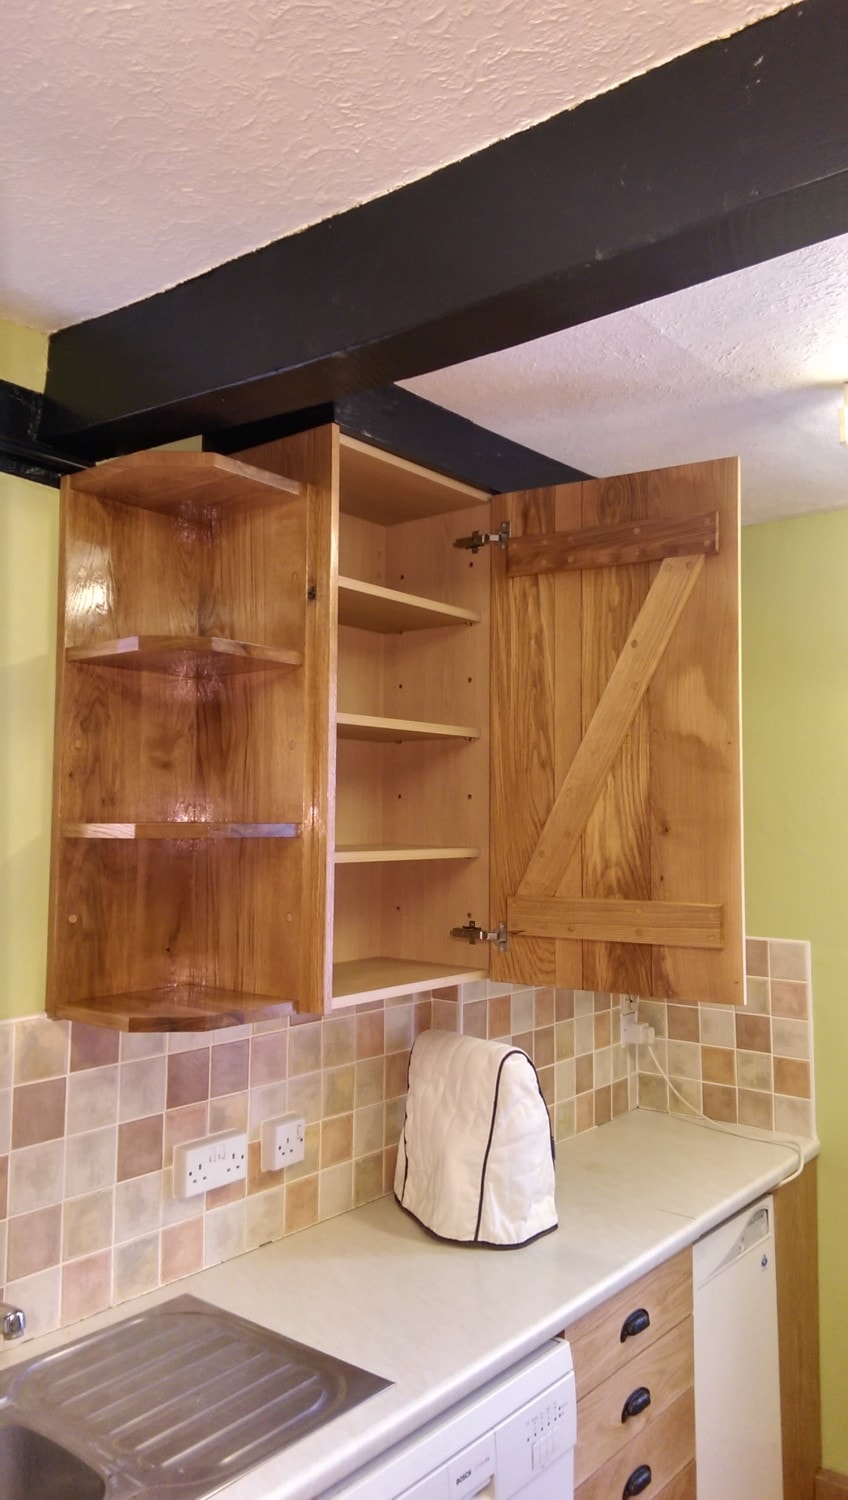 Bespoke kitchen unit, joiners Herfordshire